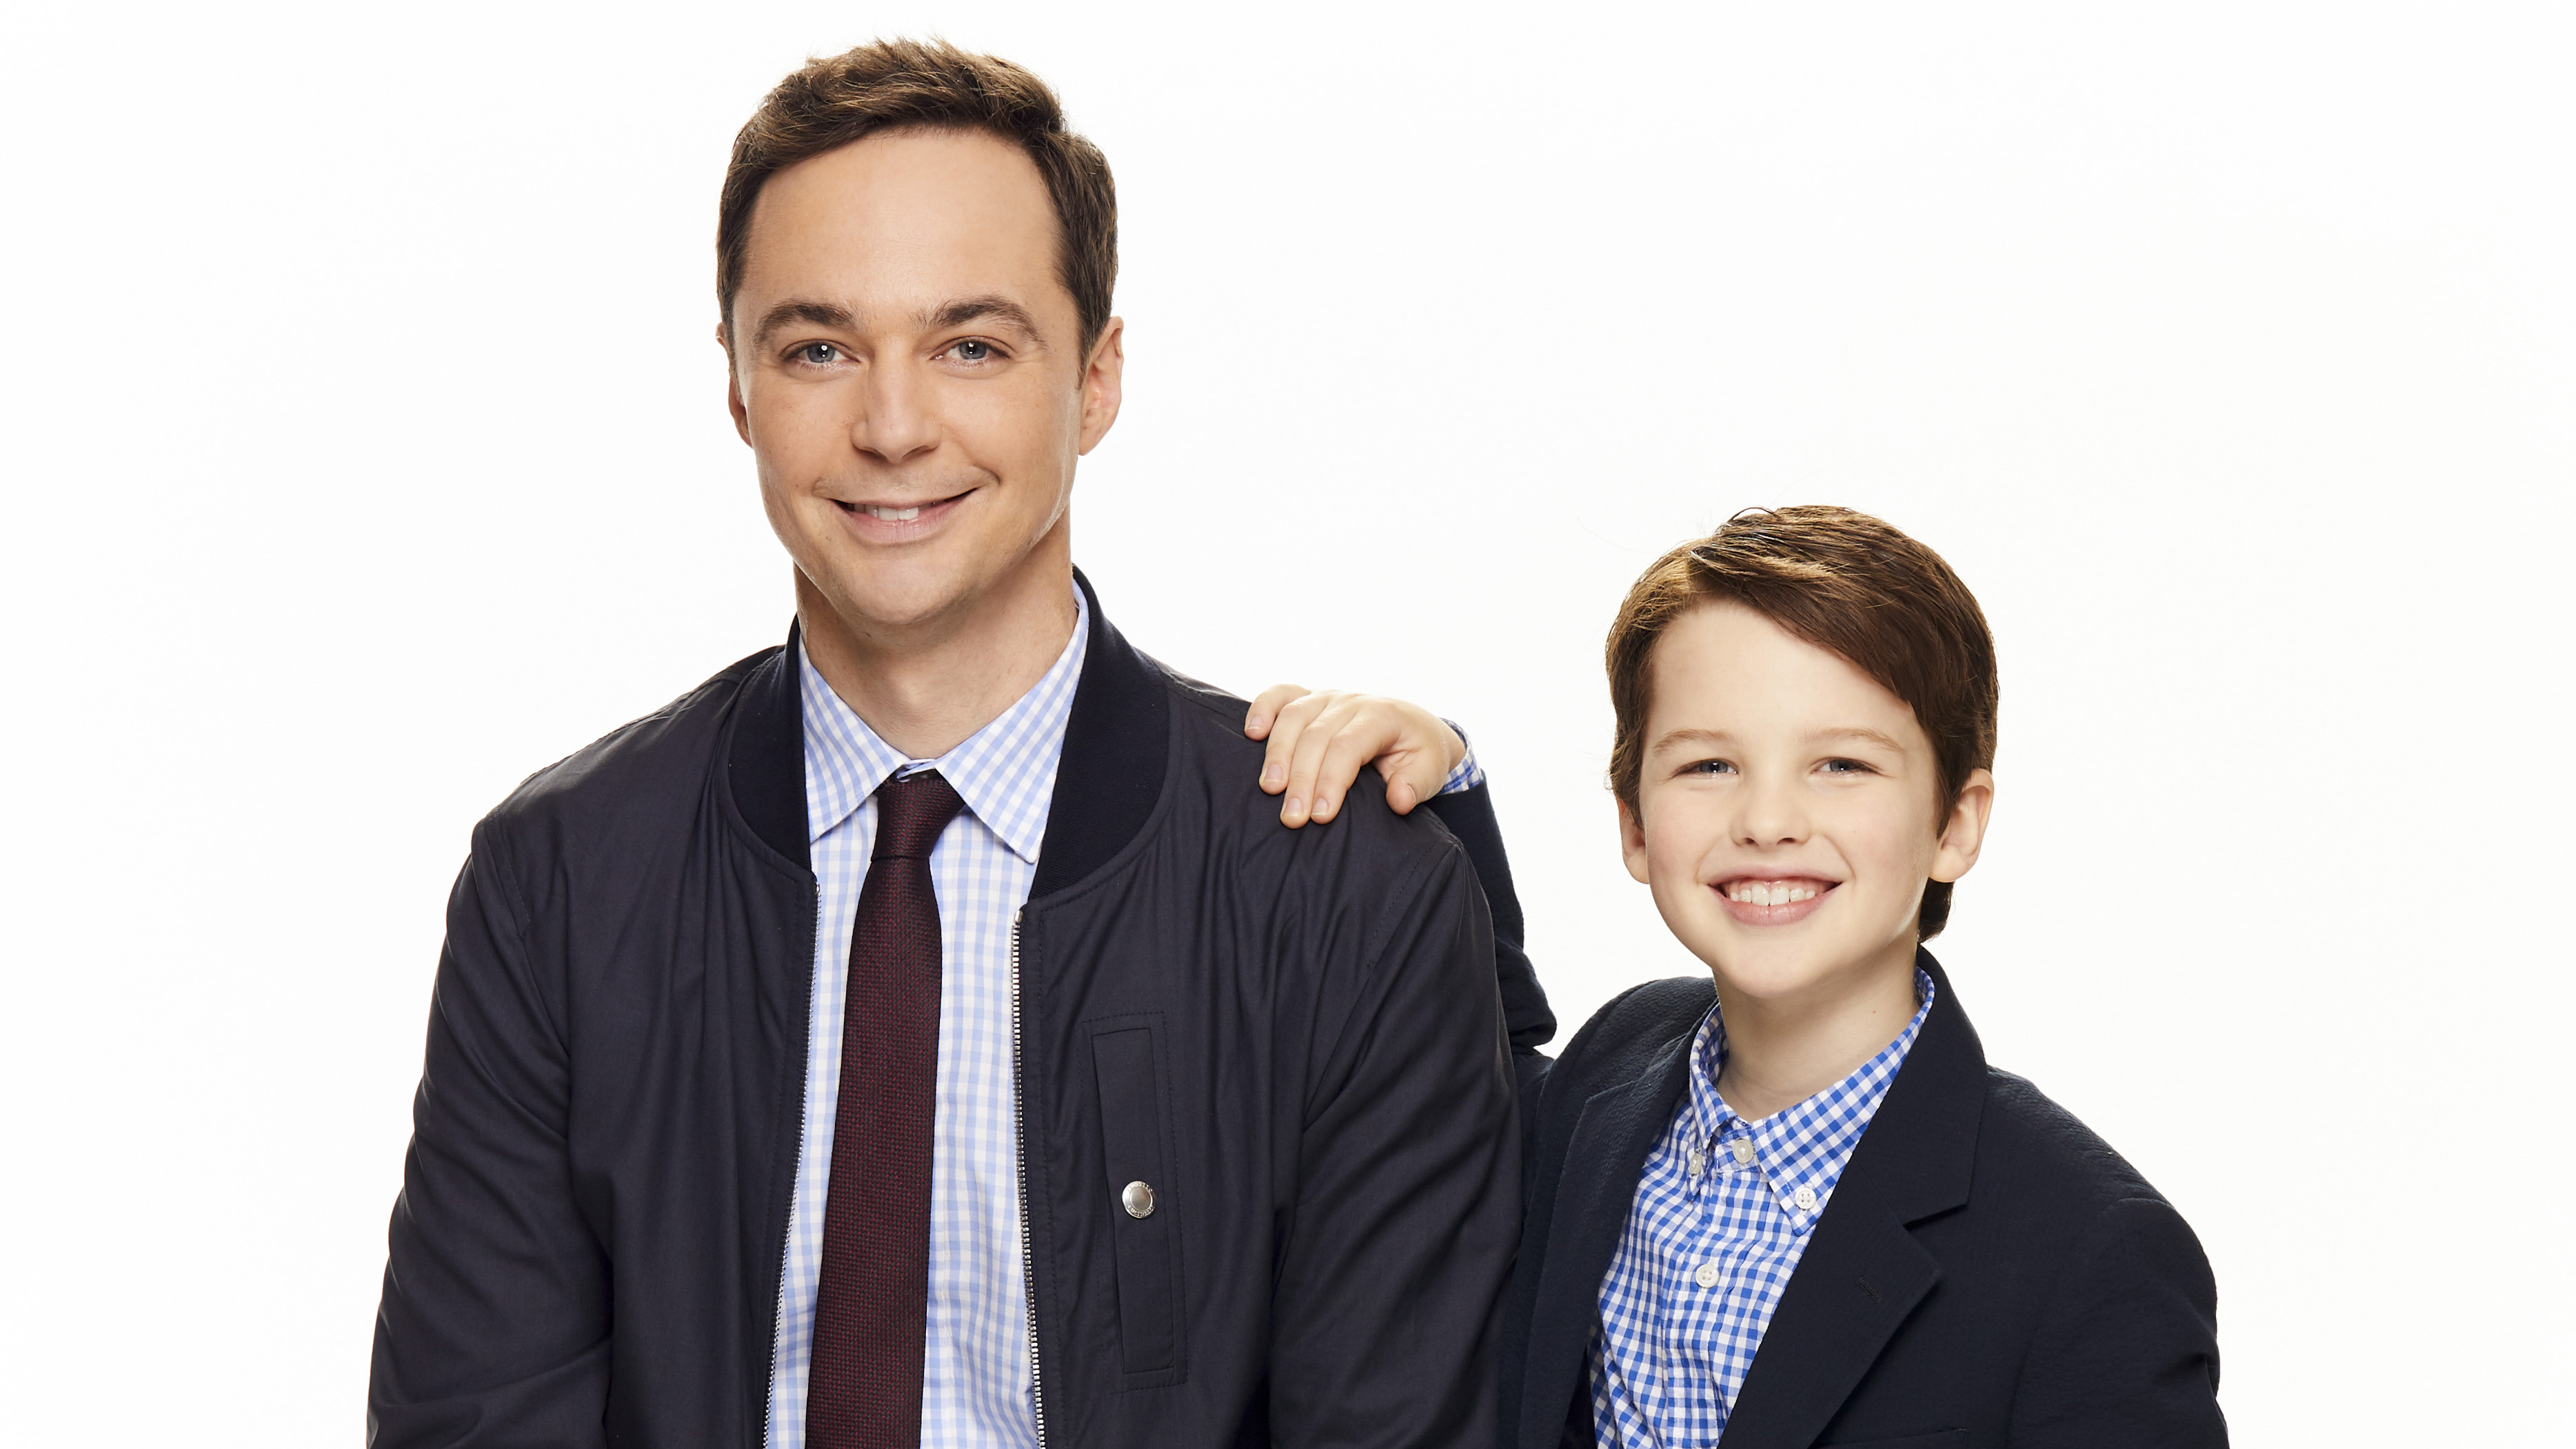 Jim Parsons And Young Sheldon, HD Tv Shows, 4k Wallpapers, Image